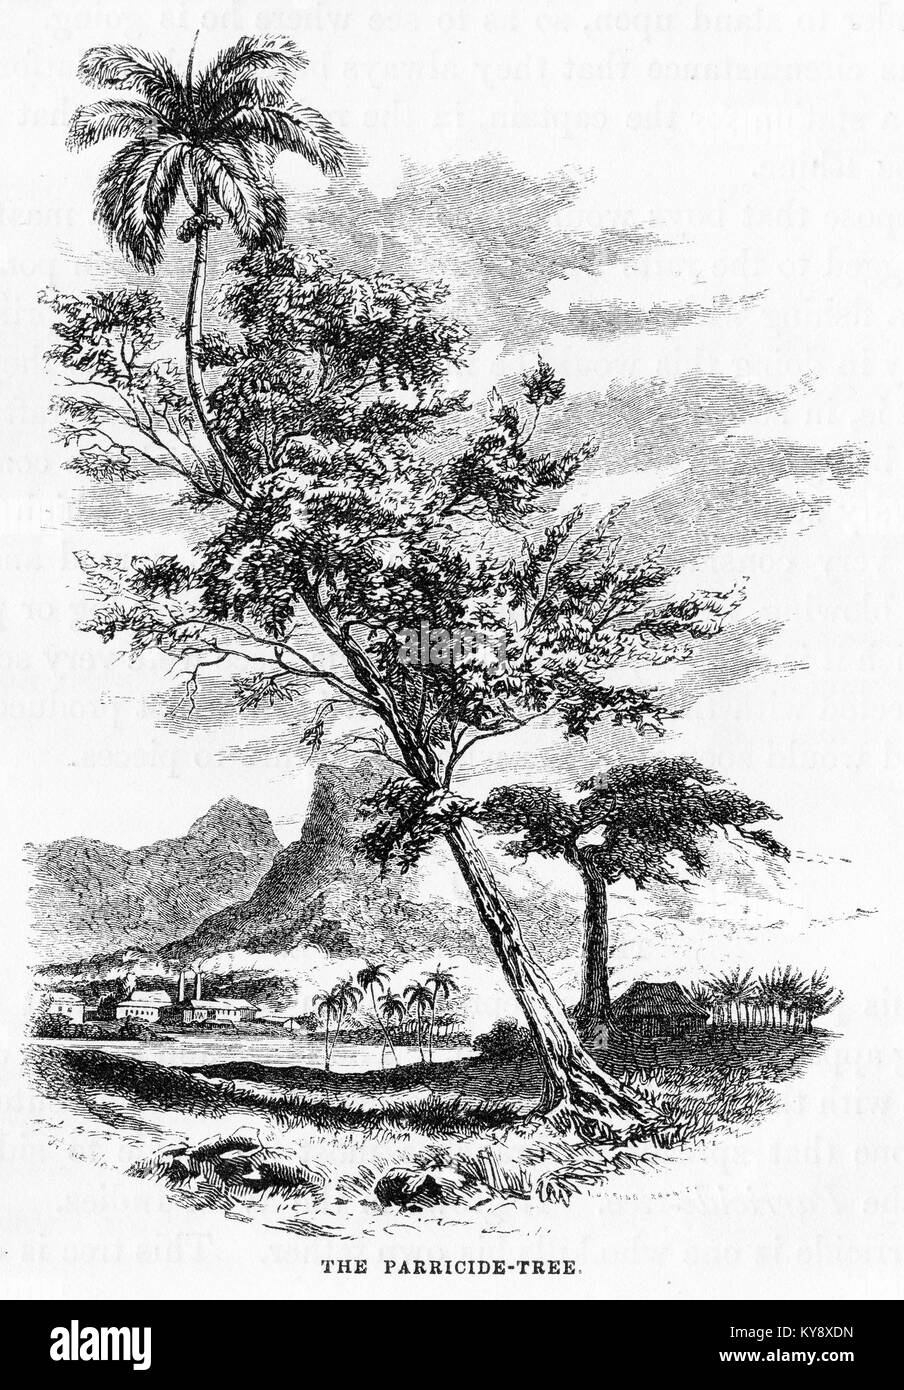 Engraving of a species of parasitic tree growing on a coconut palm in the tropics. From an original engraving in - Stock Image